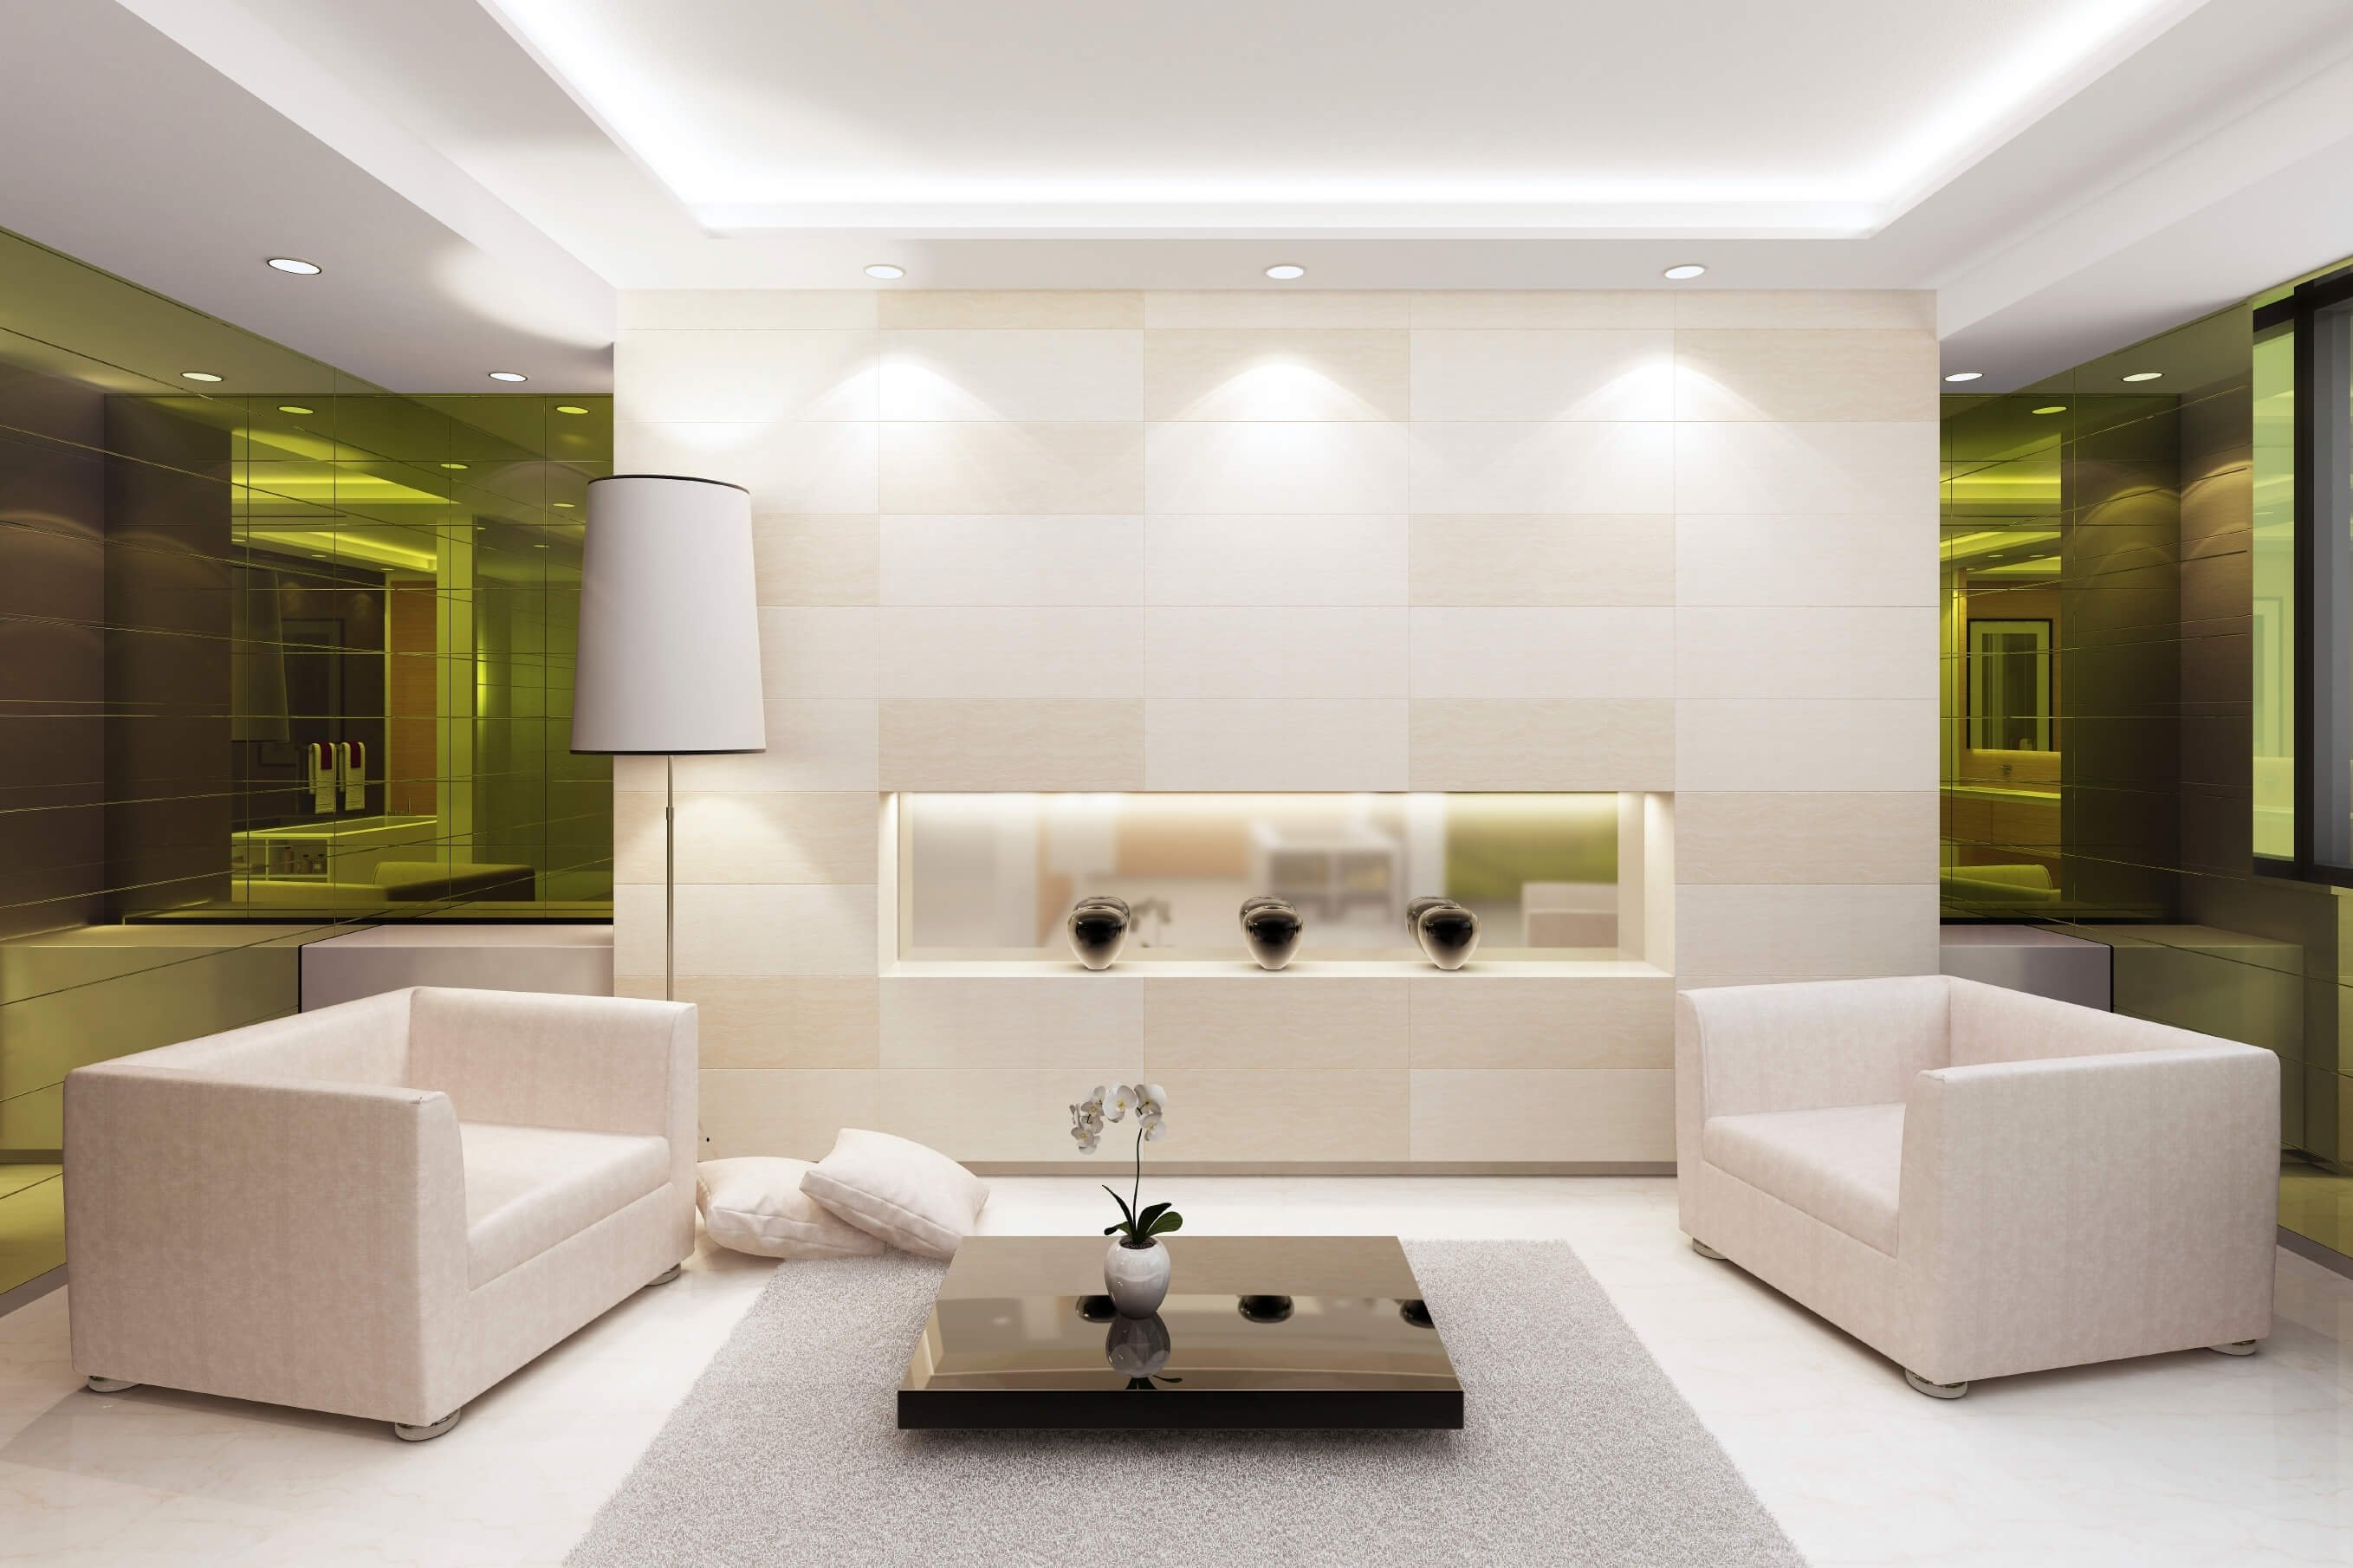 10 Famous Lighting Ideas For Living Room 40 bright living room lighting ideas 2021